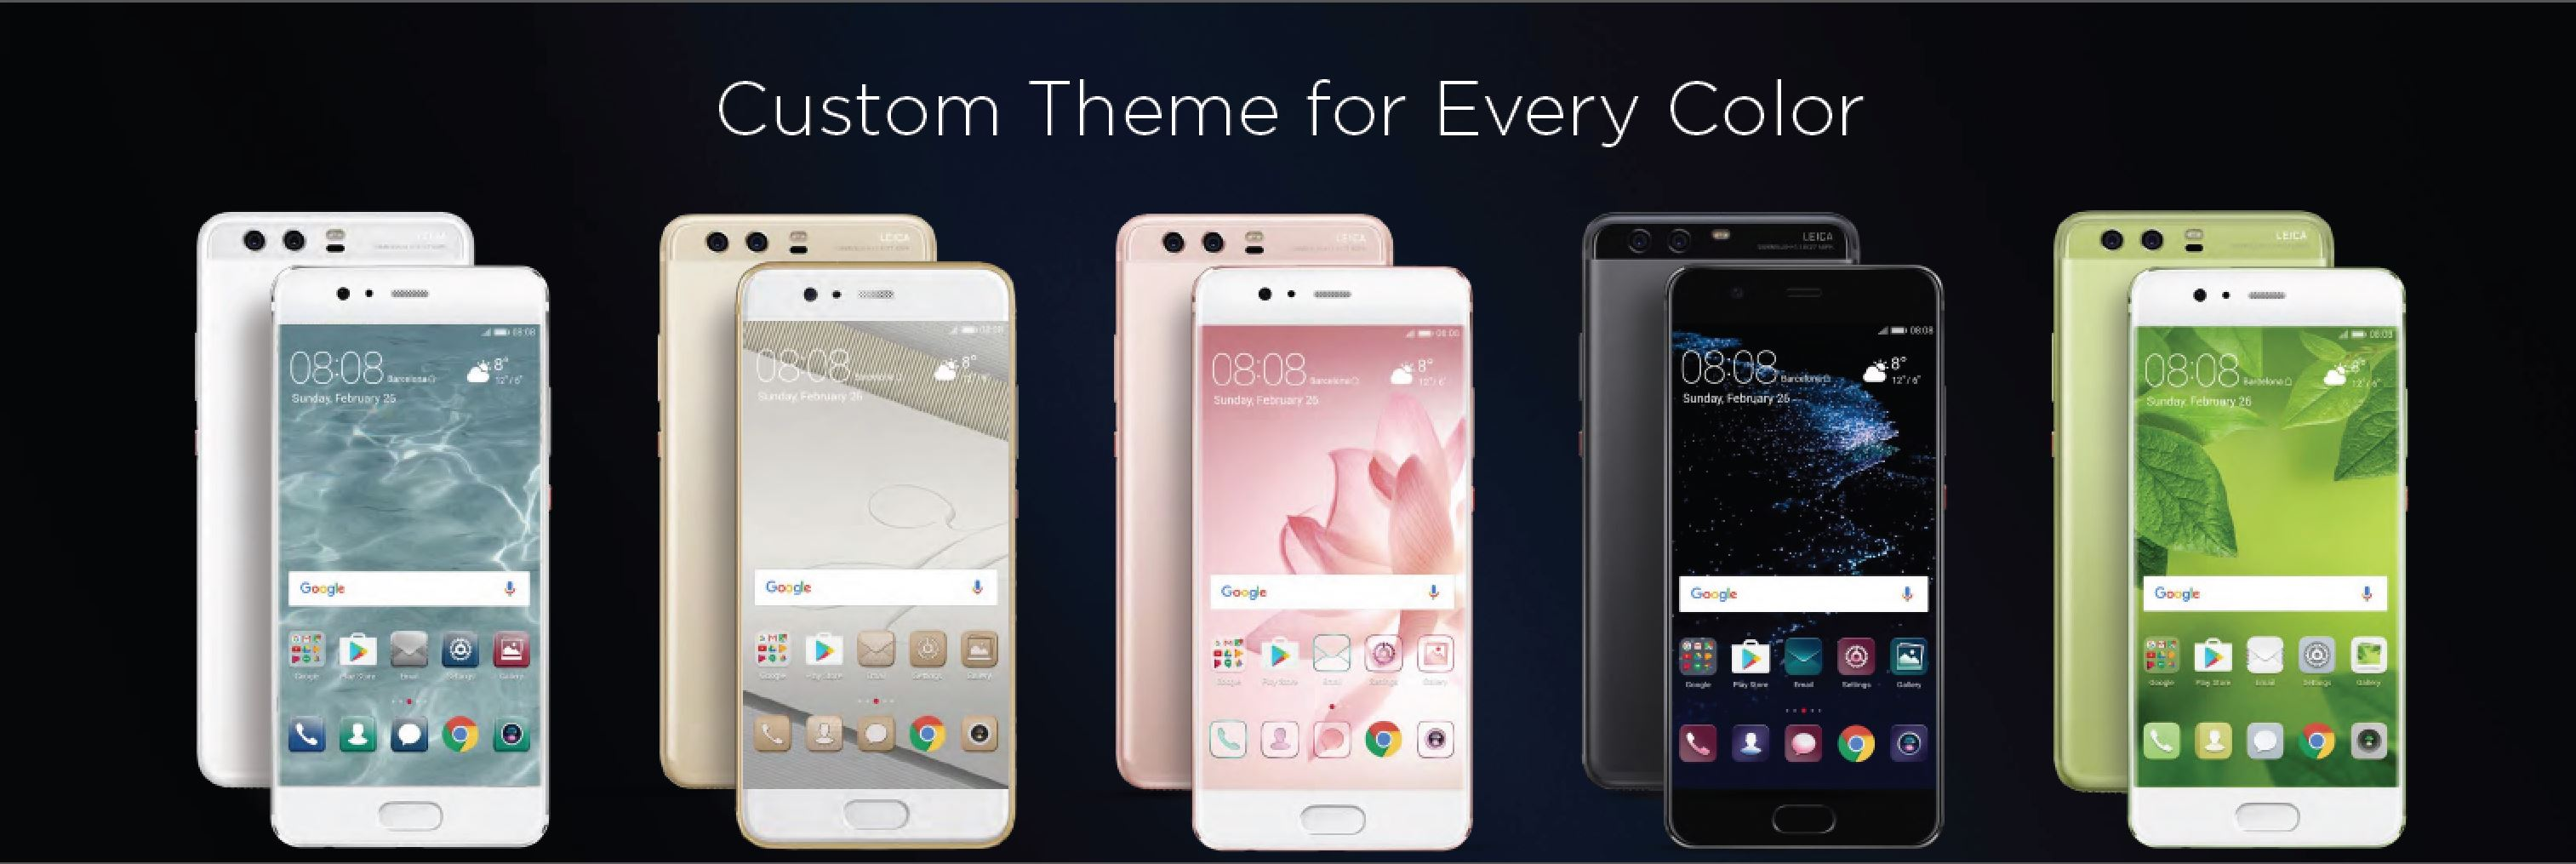 Google themes aesthetic - The Partnership With Ricostru Brings A New Aesthetic To Technology Design Fusing Huawei S Engineering Excellence With